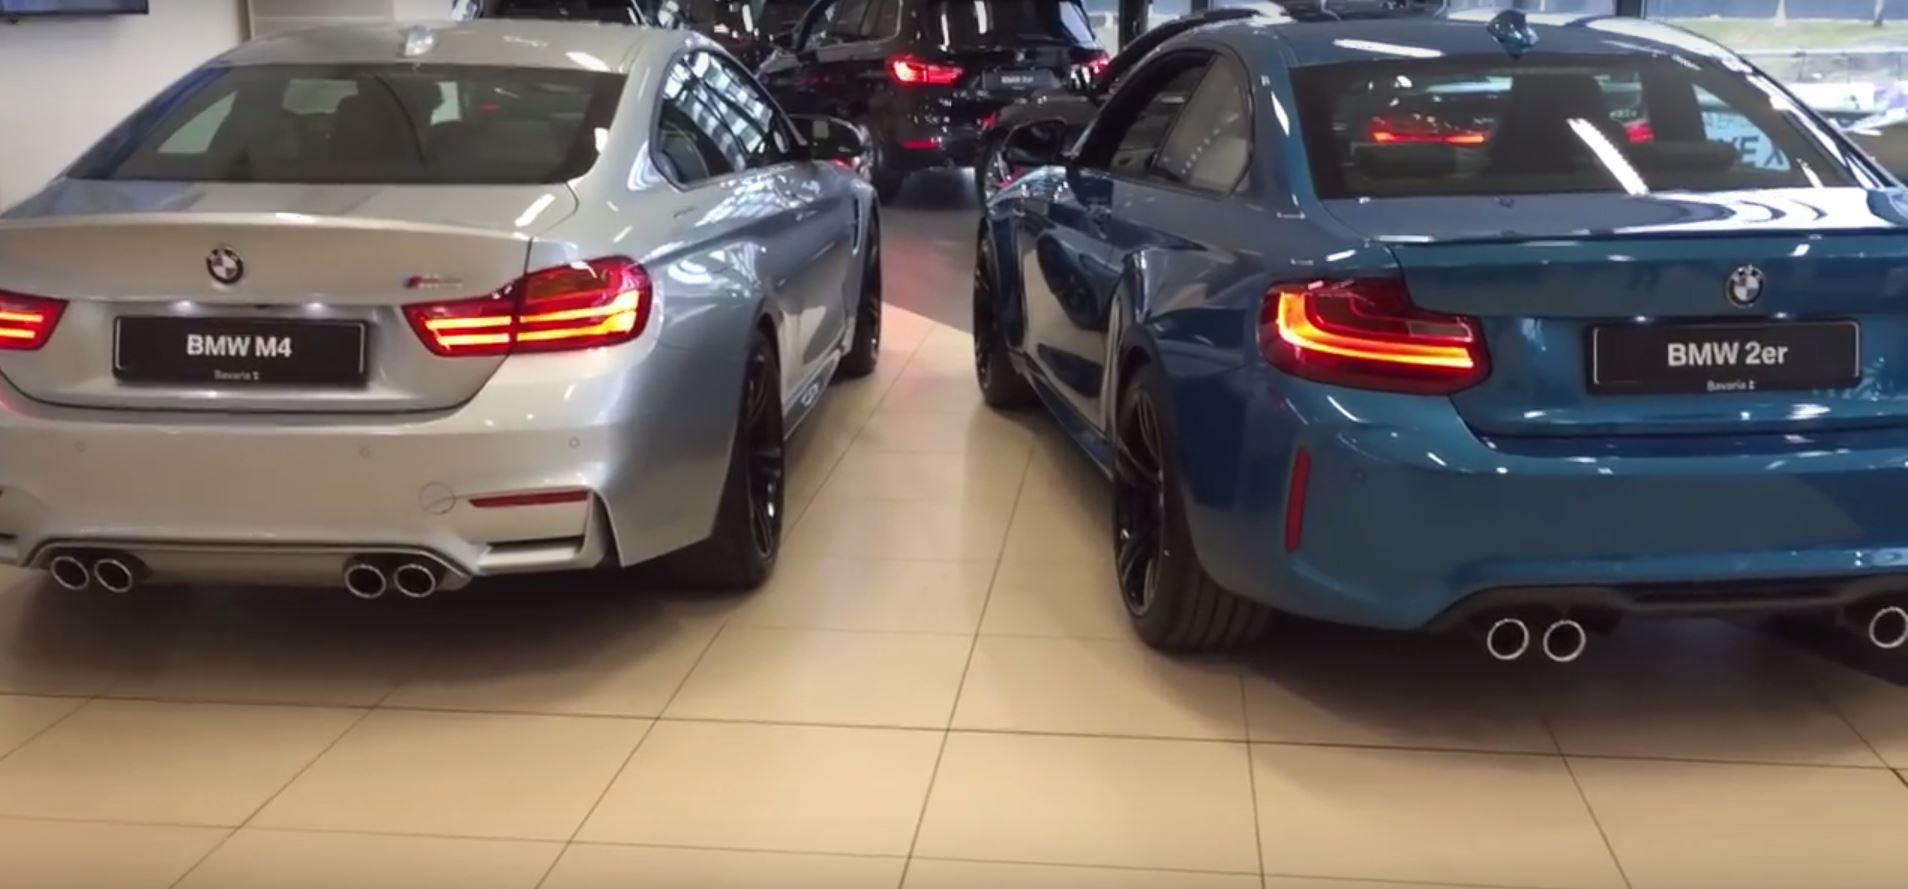 Bmw M2 Vs M4 Exhaust Battle You Don T Need A Reason To